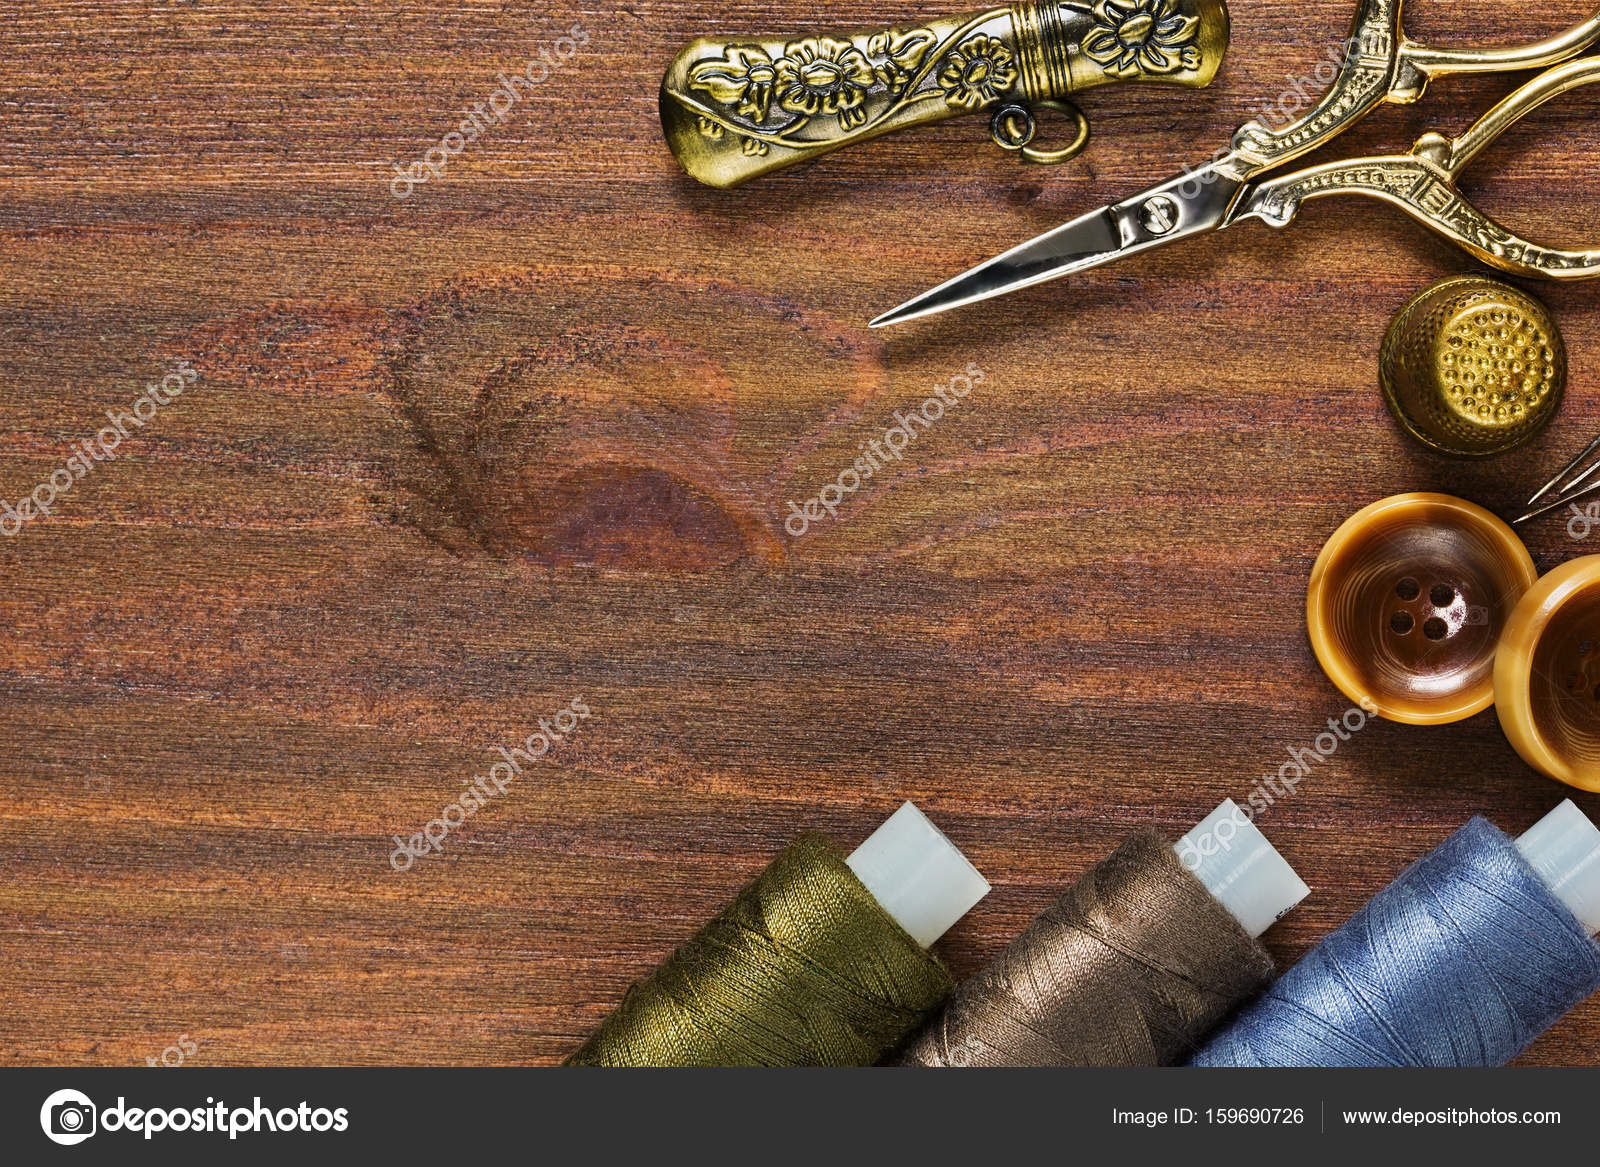 Vintage Handicraft Tools And Sewing Materials And Accessories